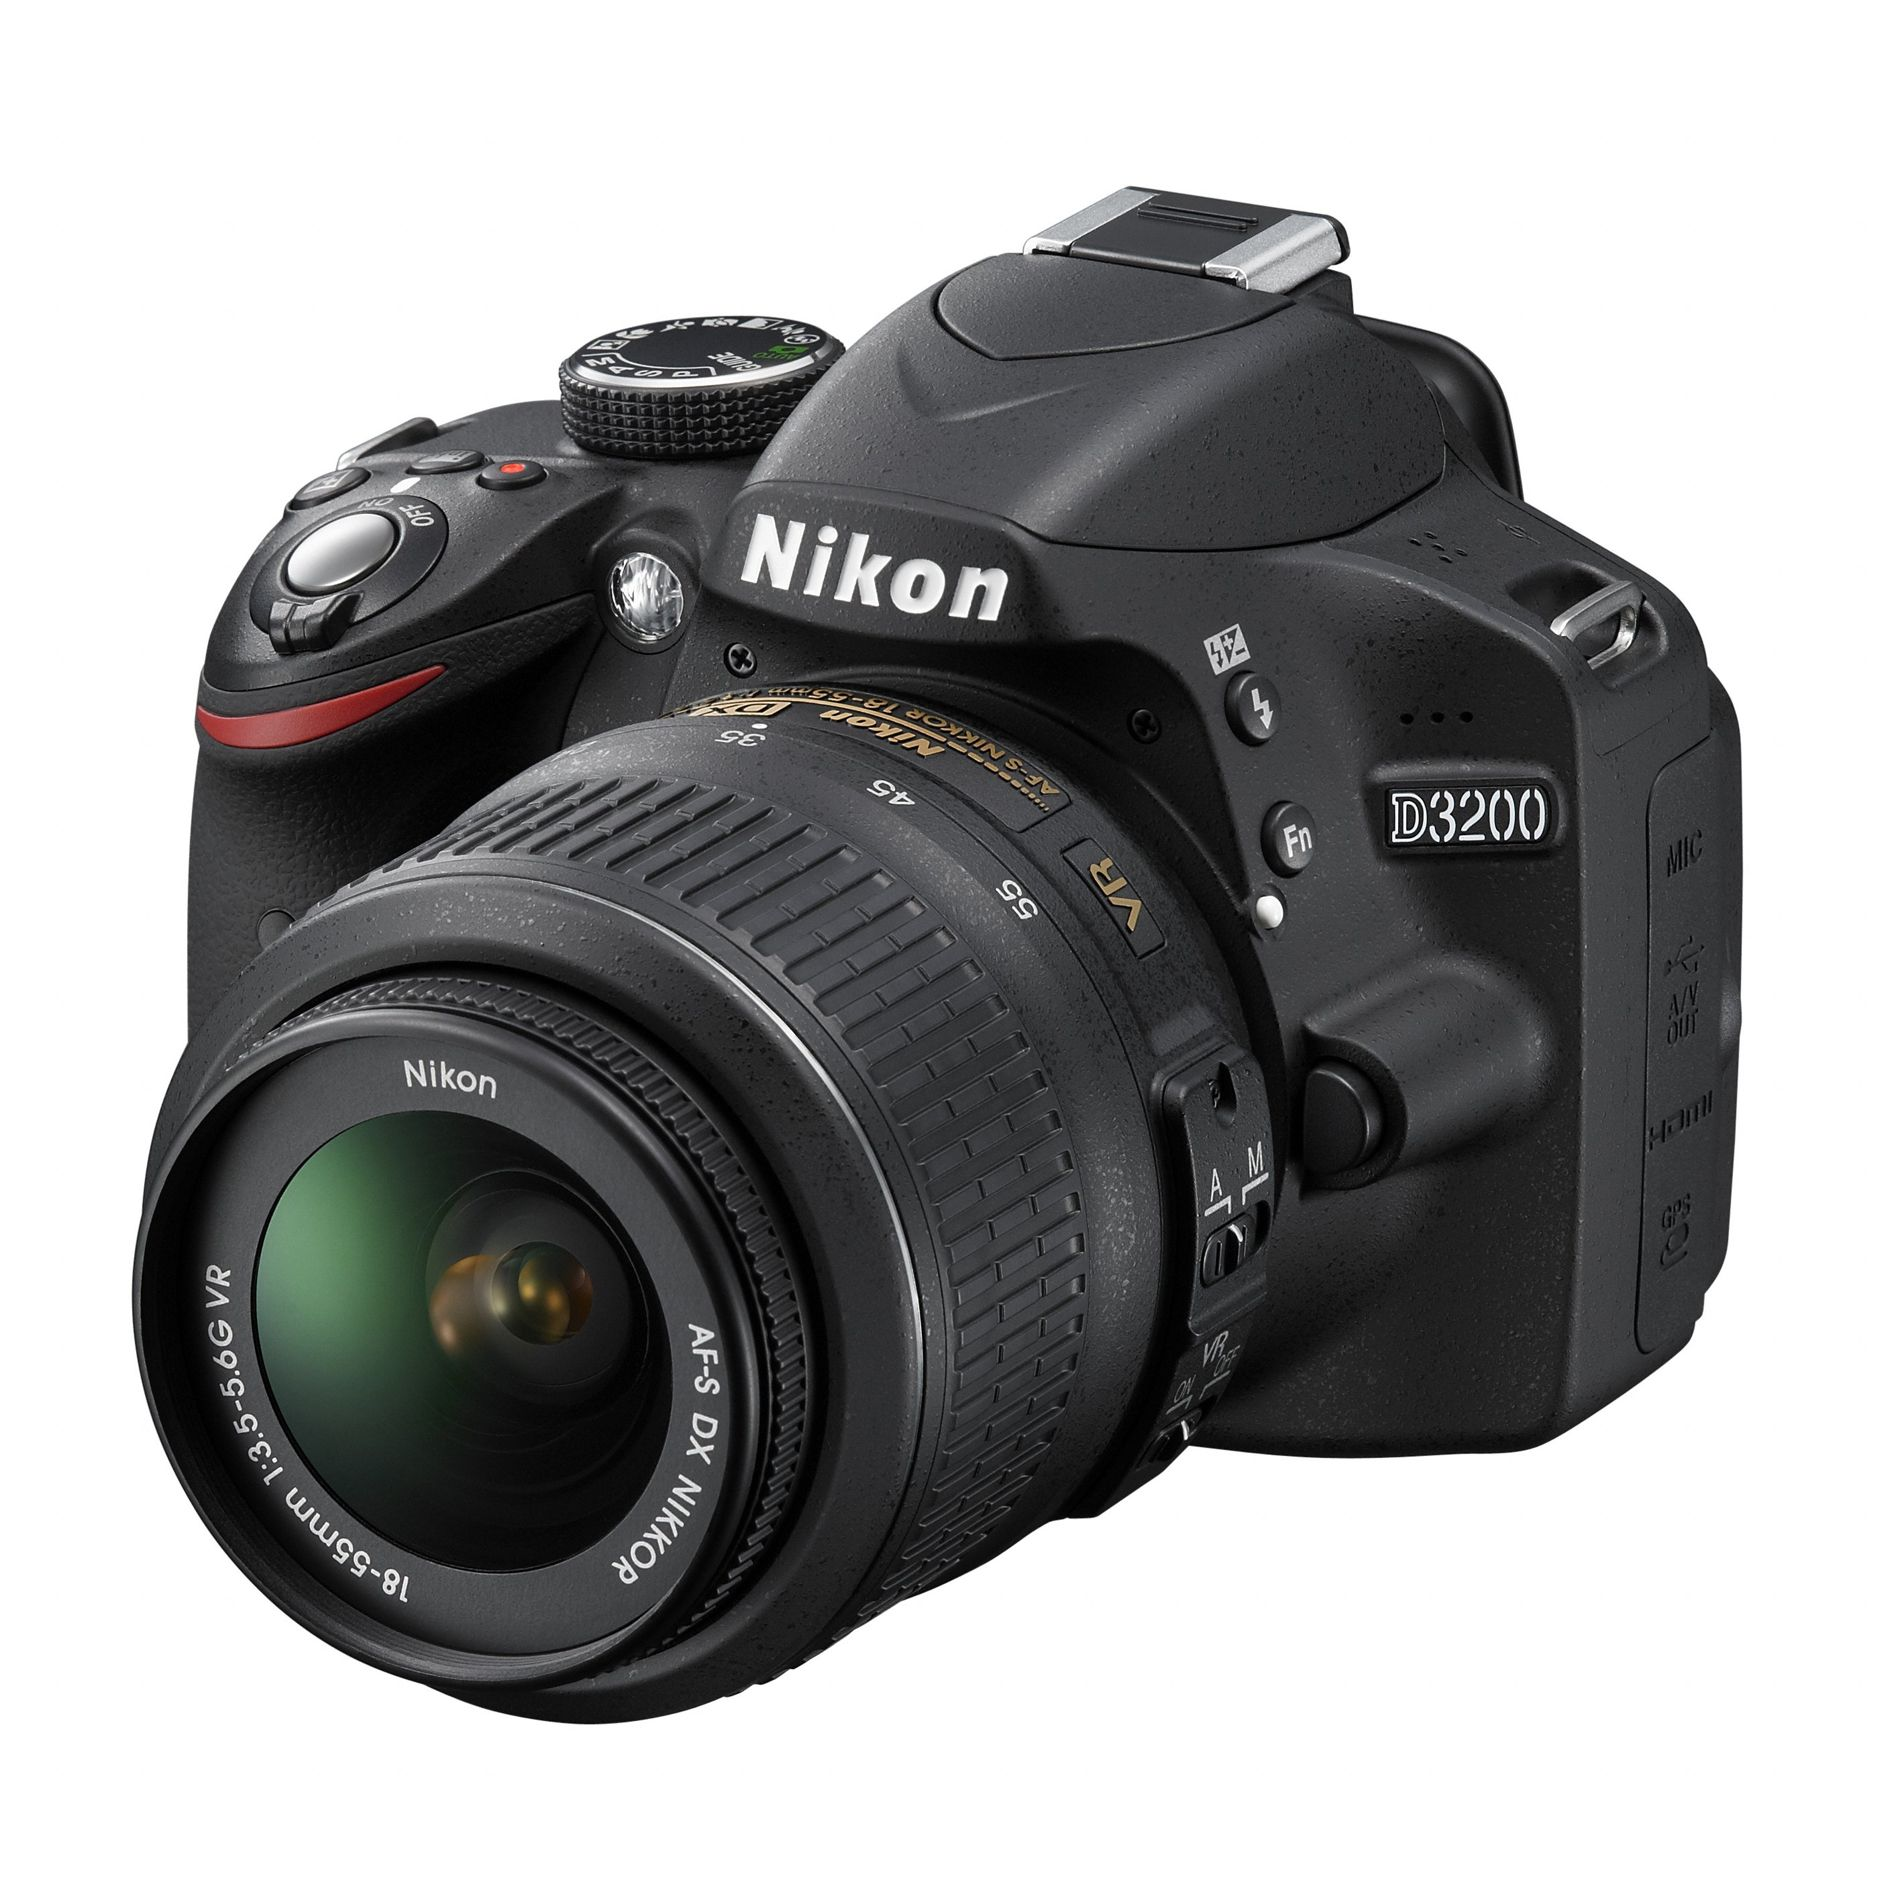 Nikon D3200 DSLR Kit - Black